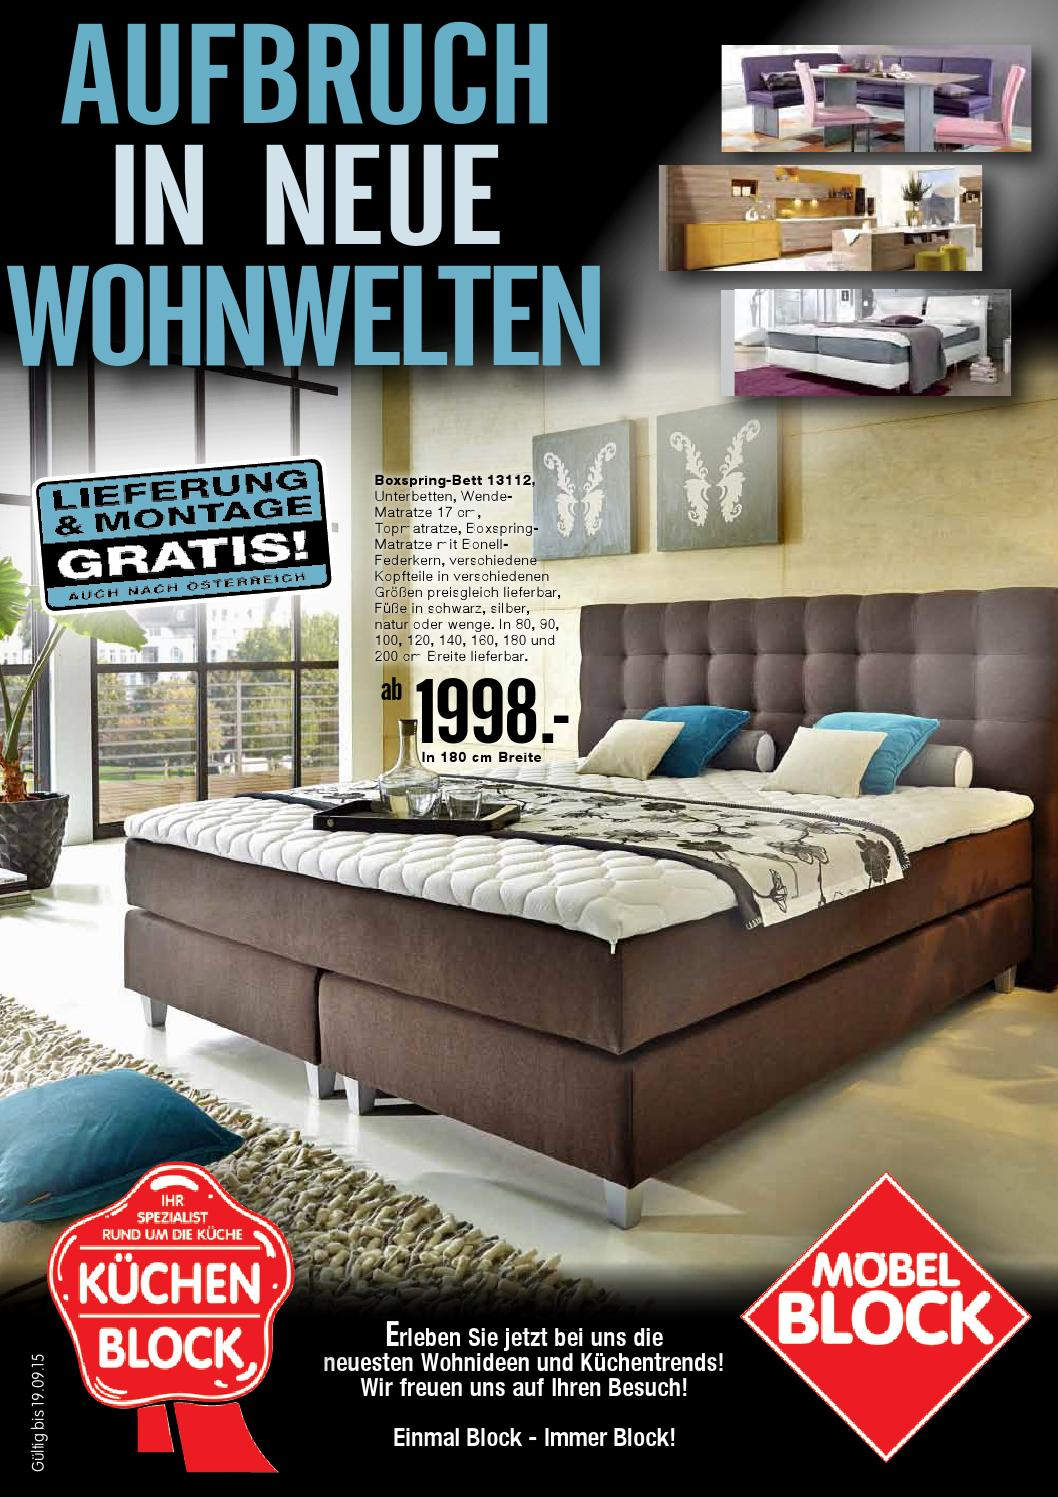 Neue Küchentrends Moebel Block Kw35 By Russmedia Digital Gmbh Issuu